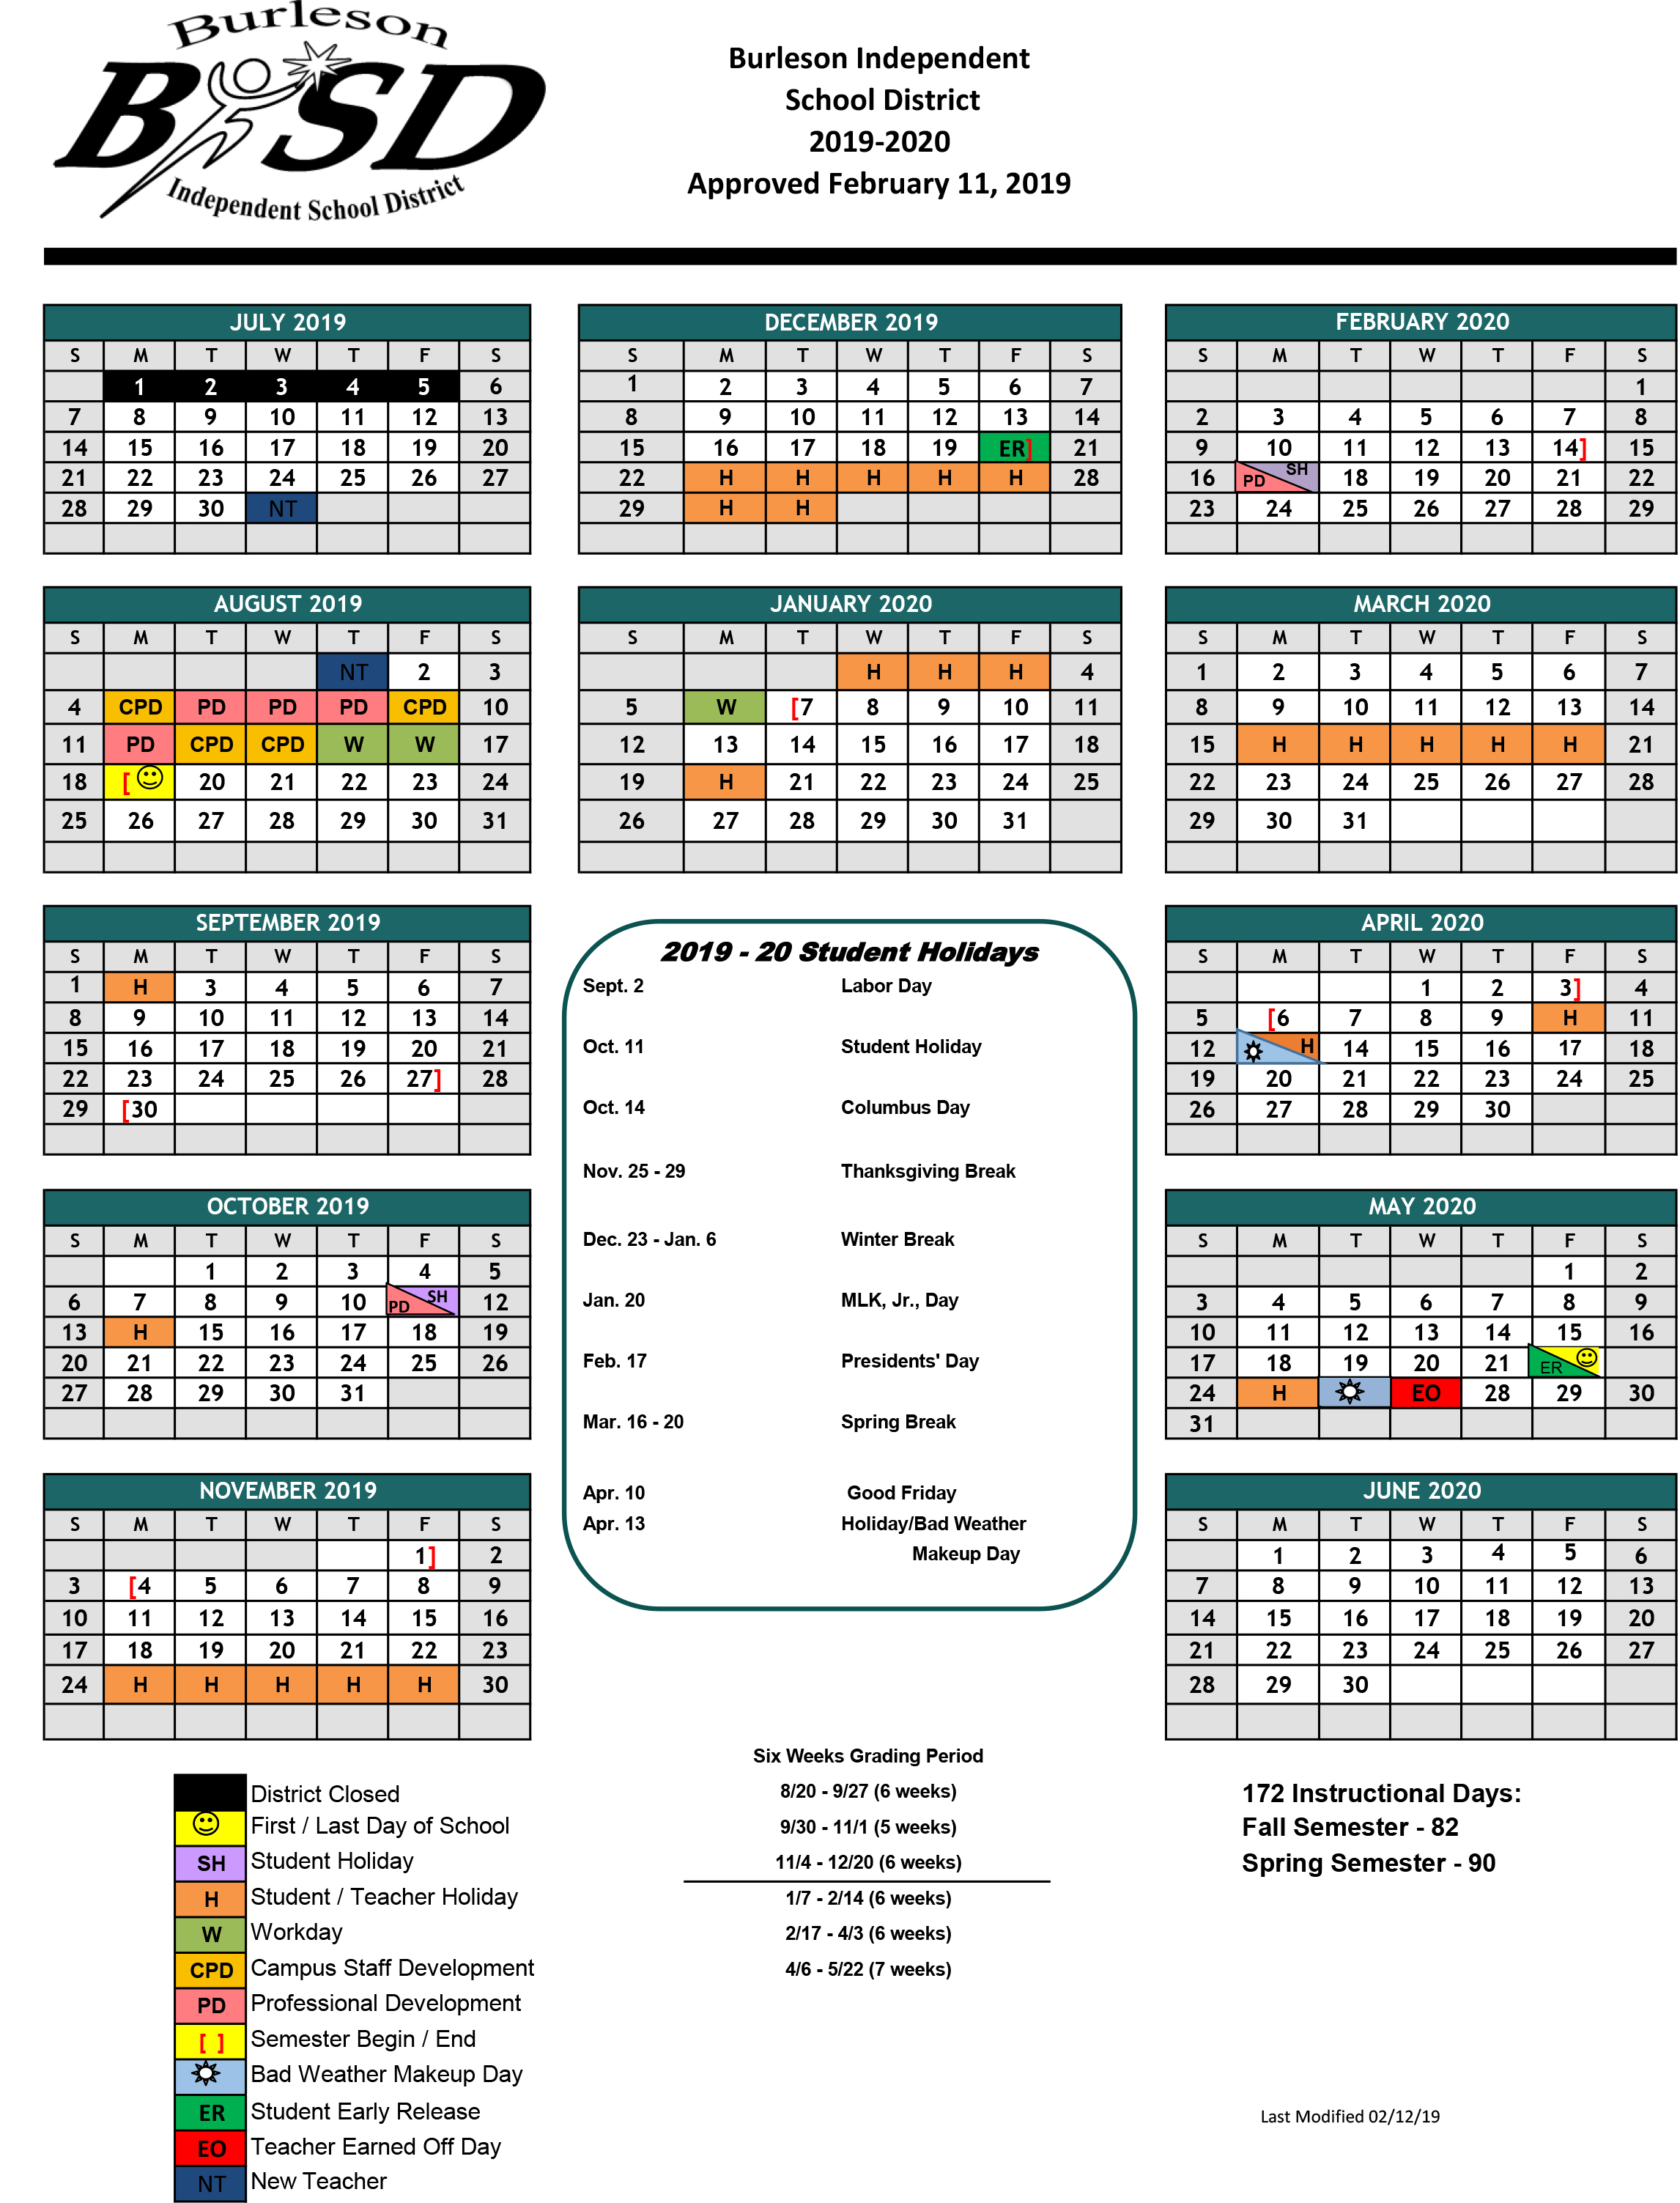 Brownsville Isd Calendar 2019 Burleson ISD Student Calendar for 2019 20 School Year Approved​